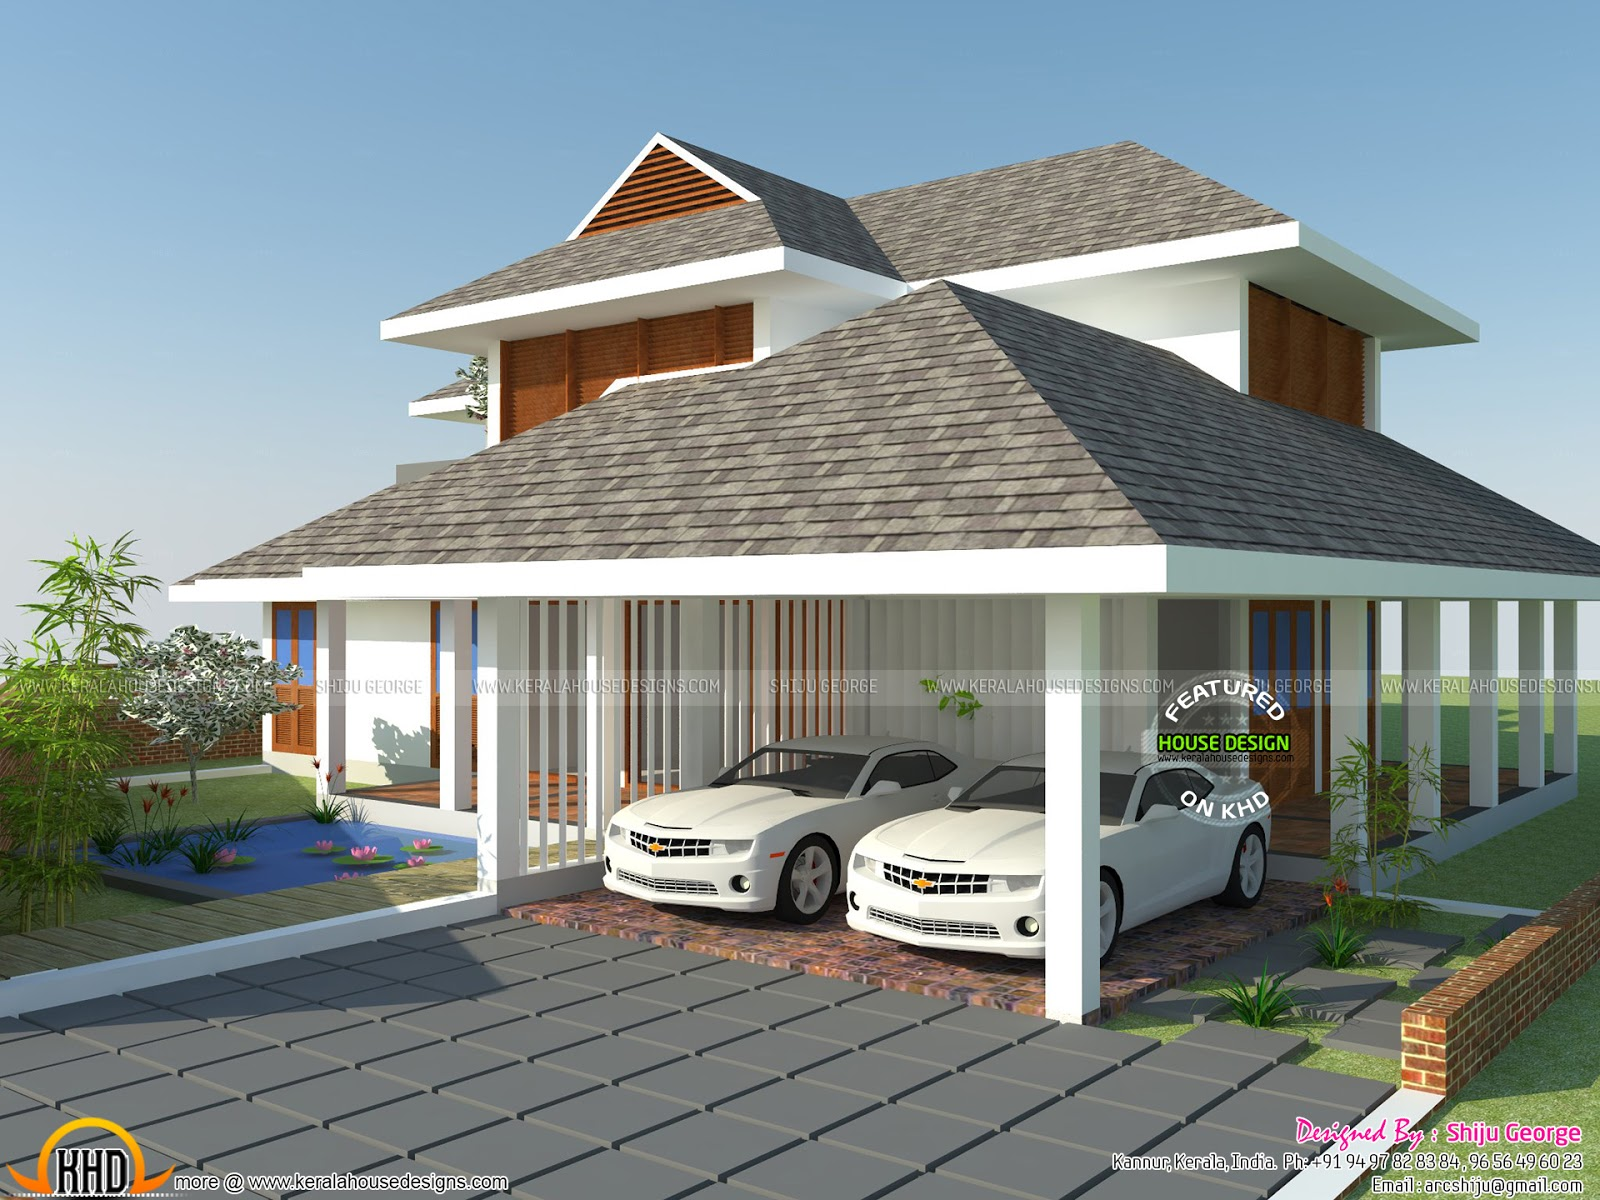 House design for 60 square meter - Sloping Roof G 1 Residence House Facilities